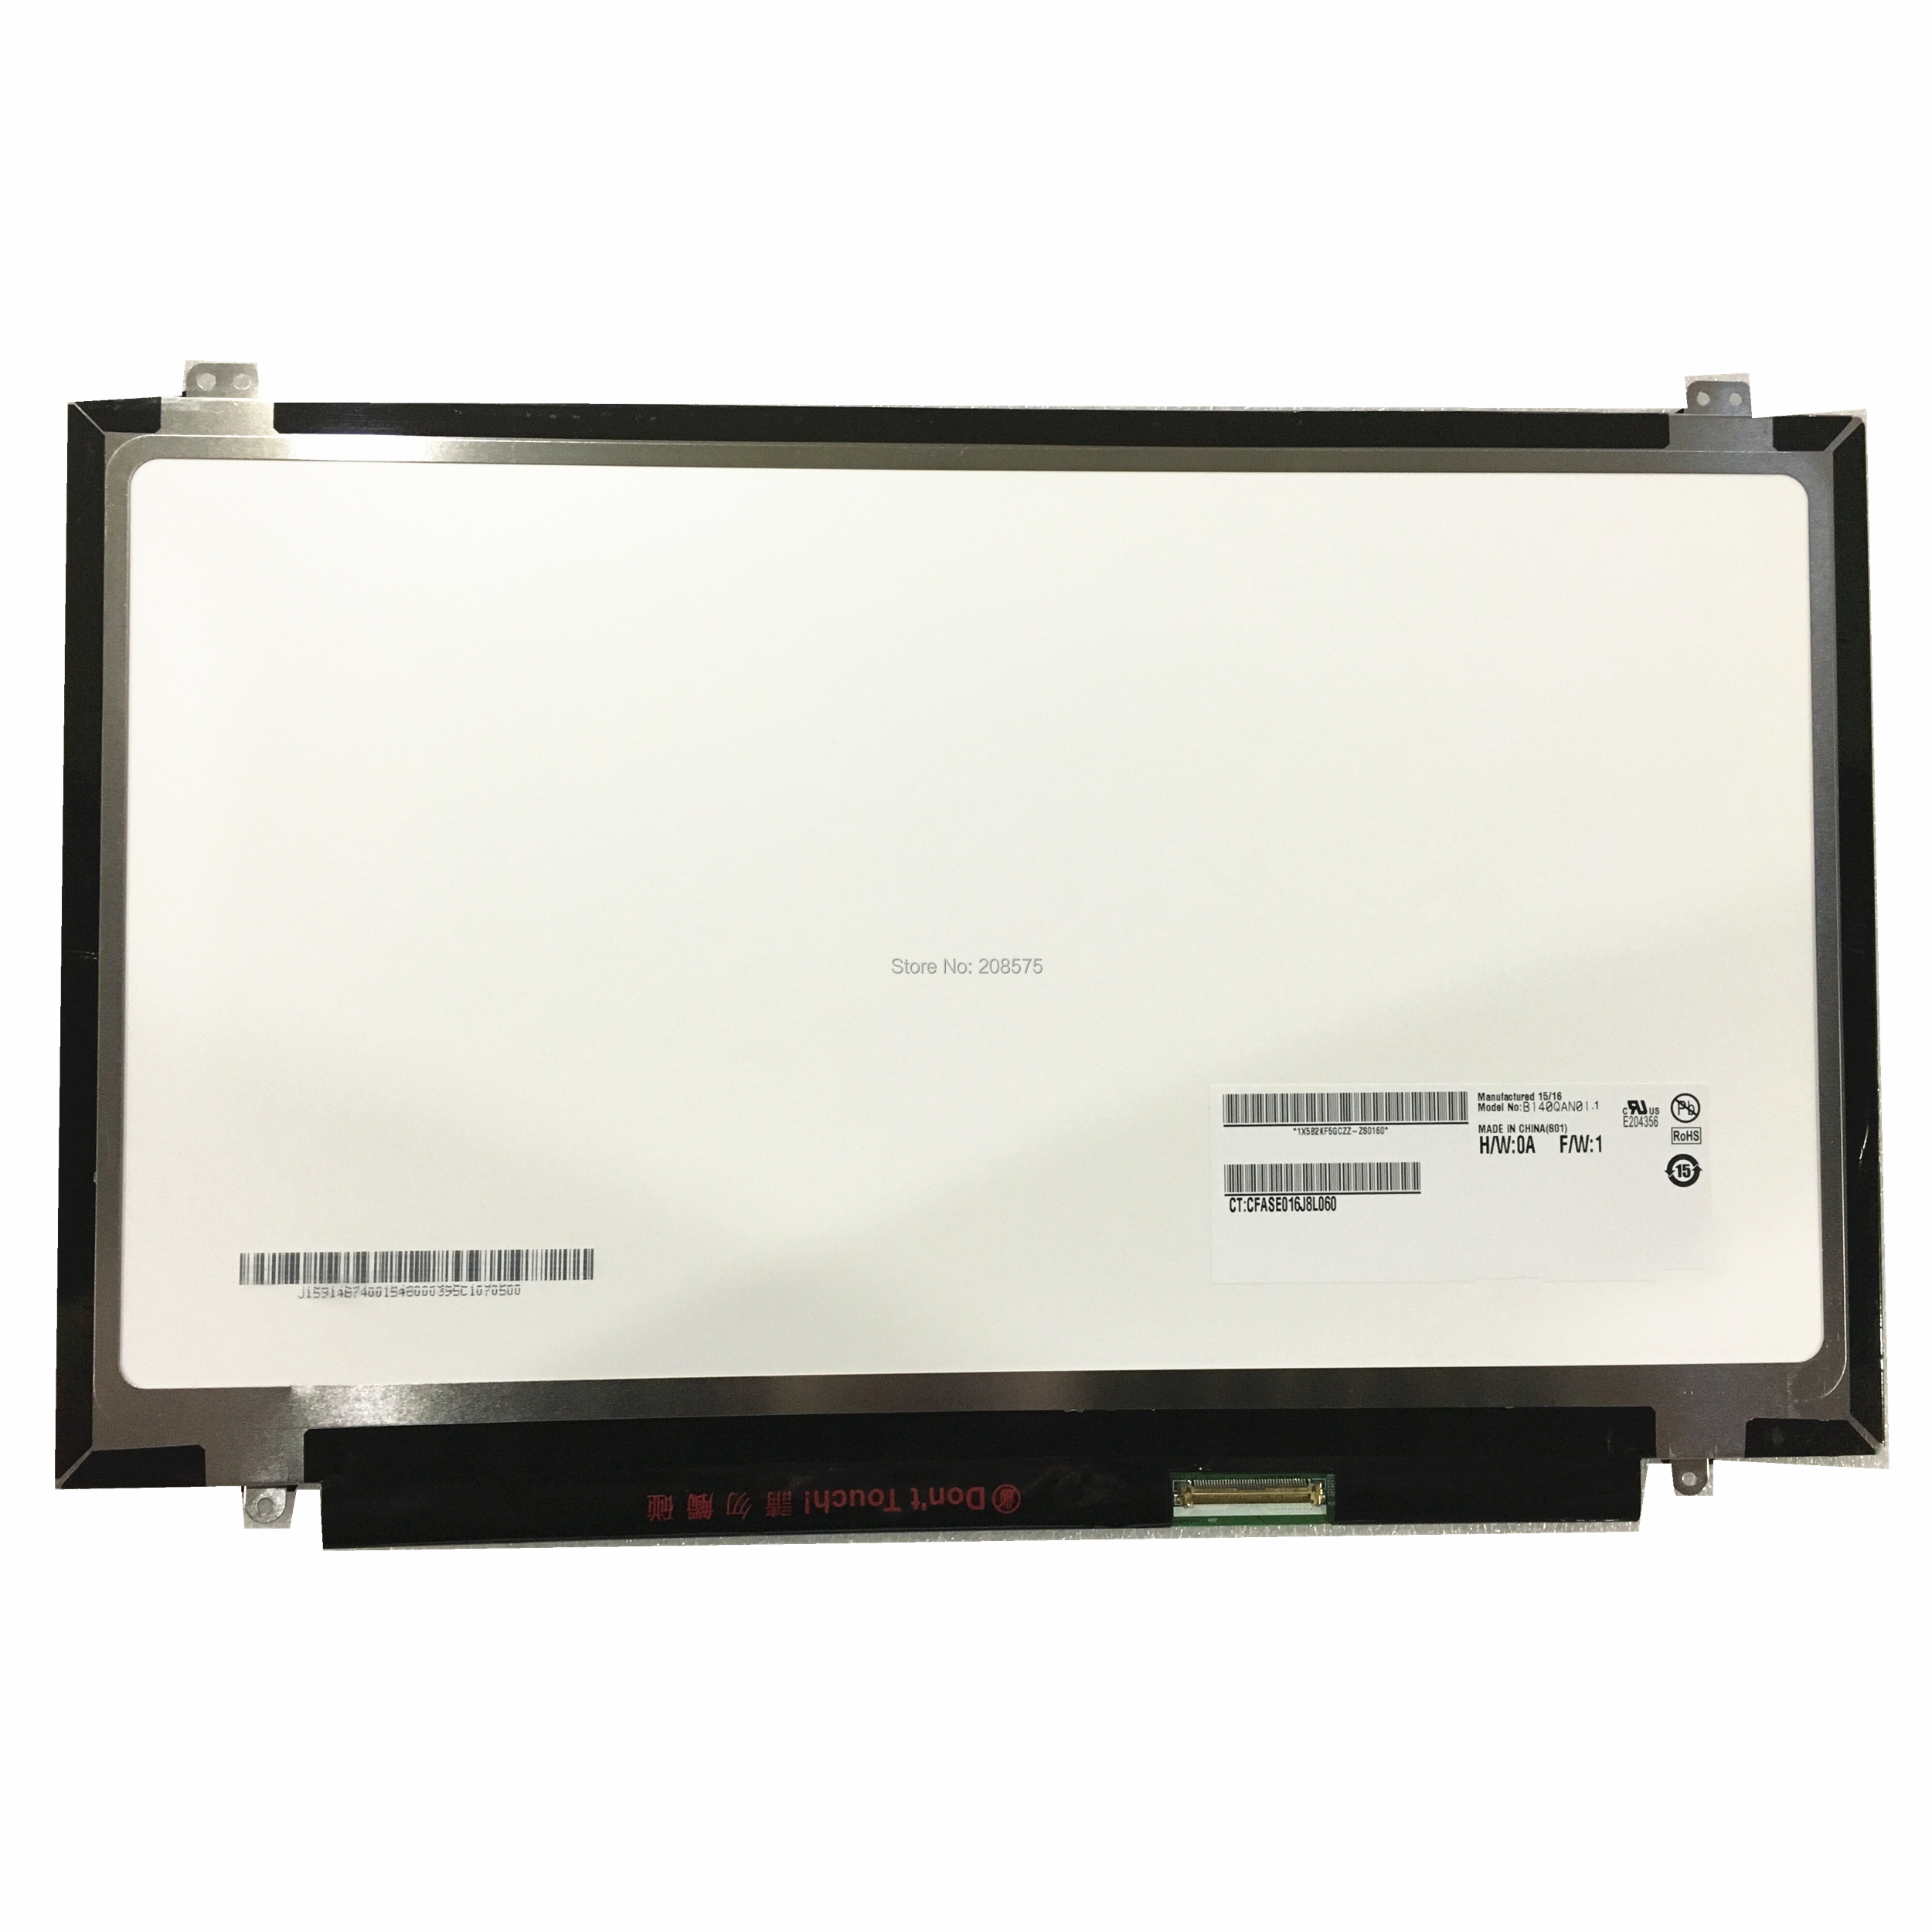 "DELL Latitude 15 3550 LED LCD Screen for 15.6/"" eDP WUXGA FHD Display 1920X1080"